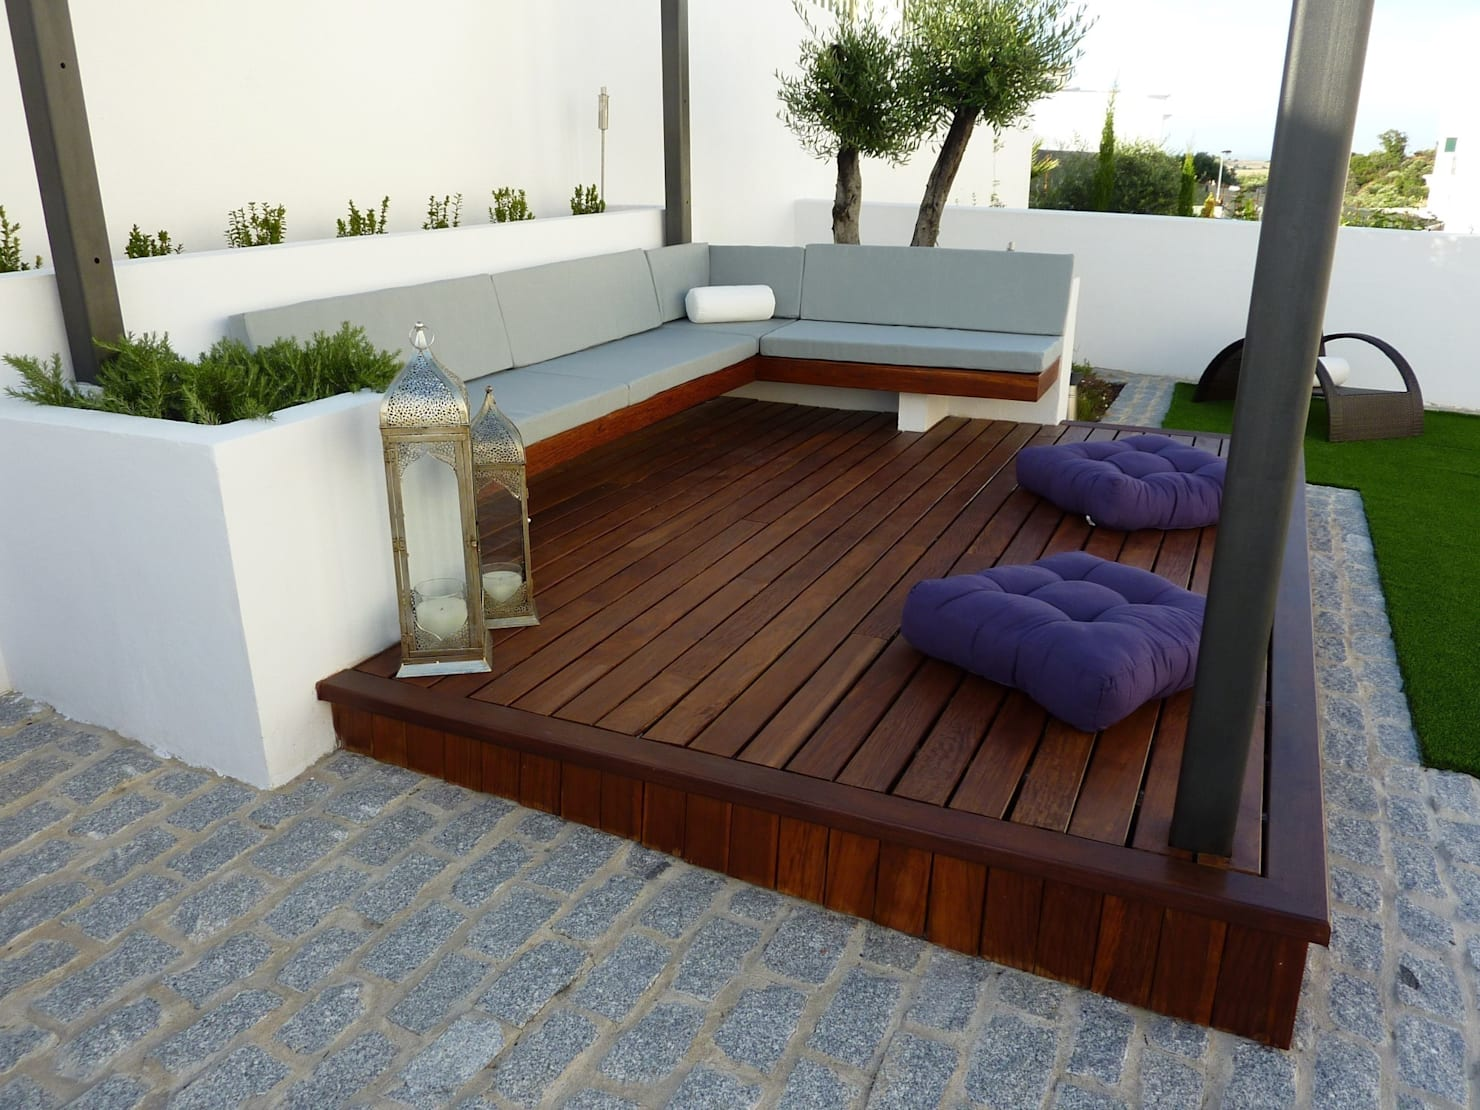 20 wooden terrace ideas to spruce up your home